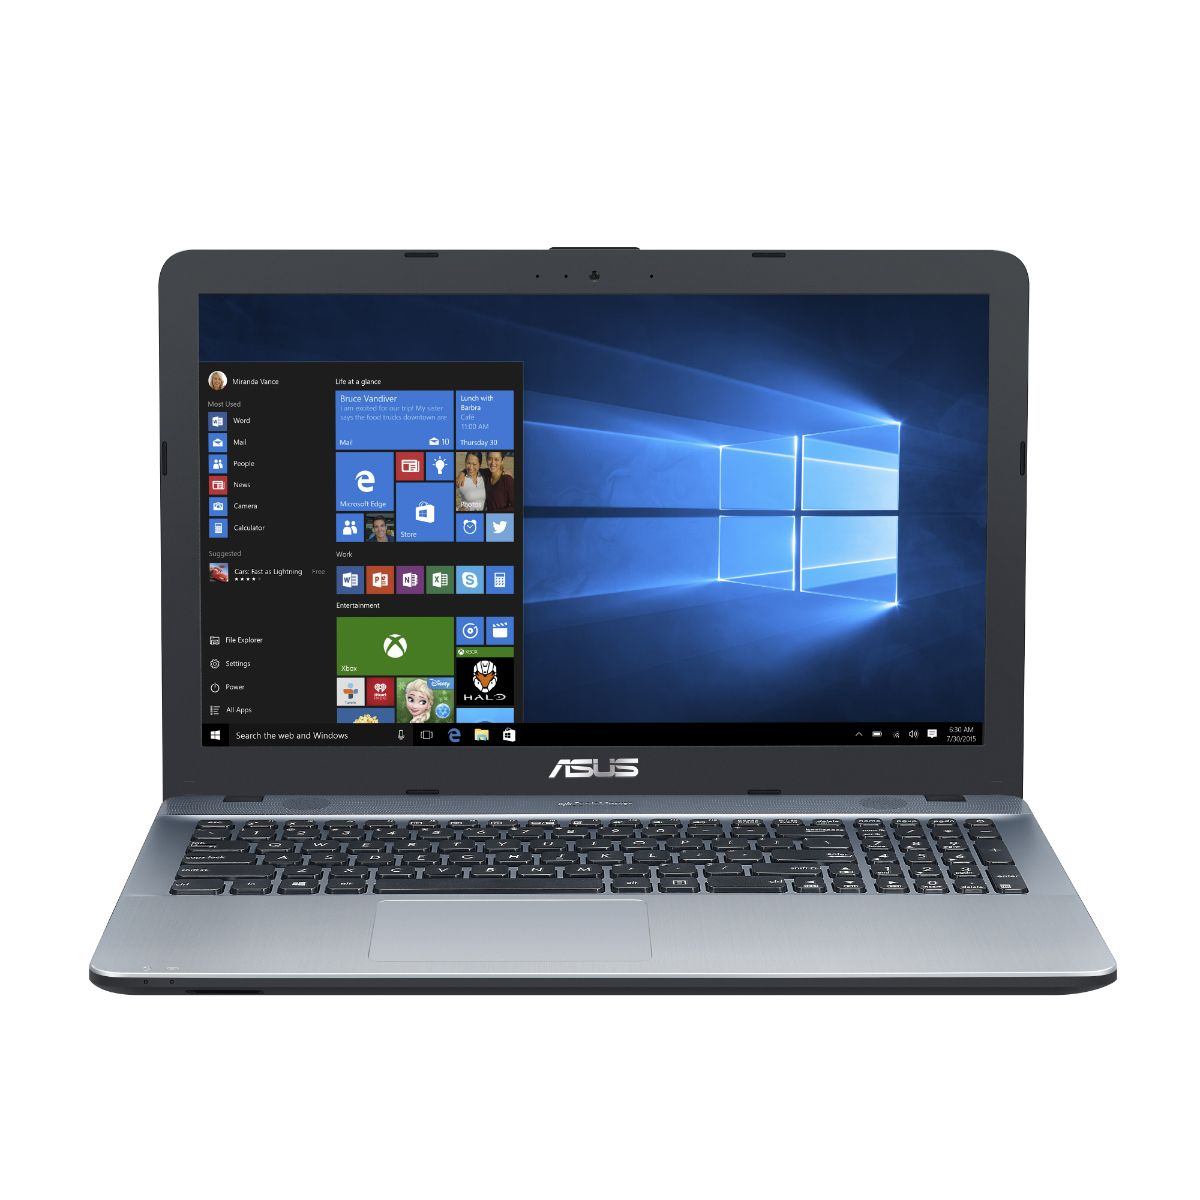 Notebook Asus X541na-go123t Dual Core Silver W10